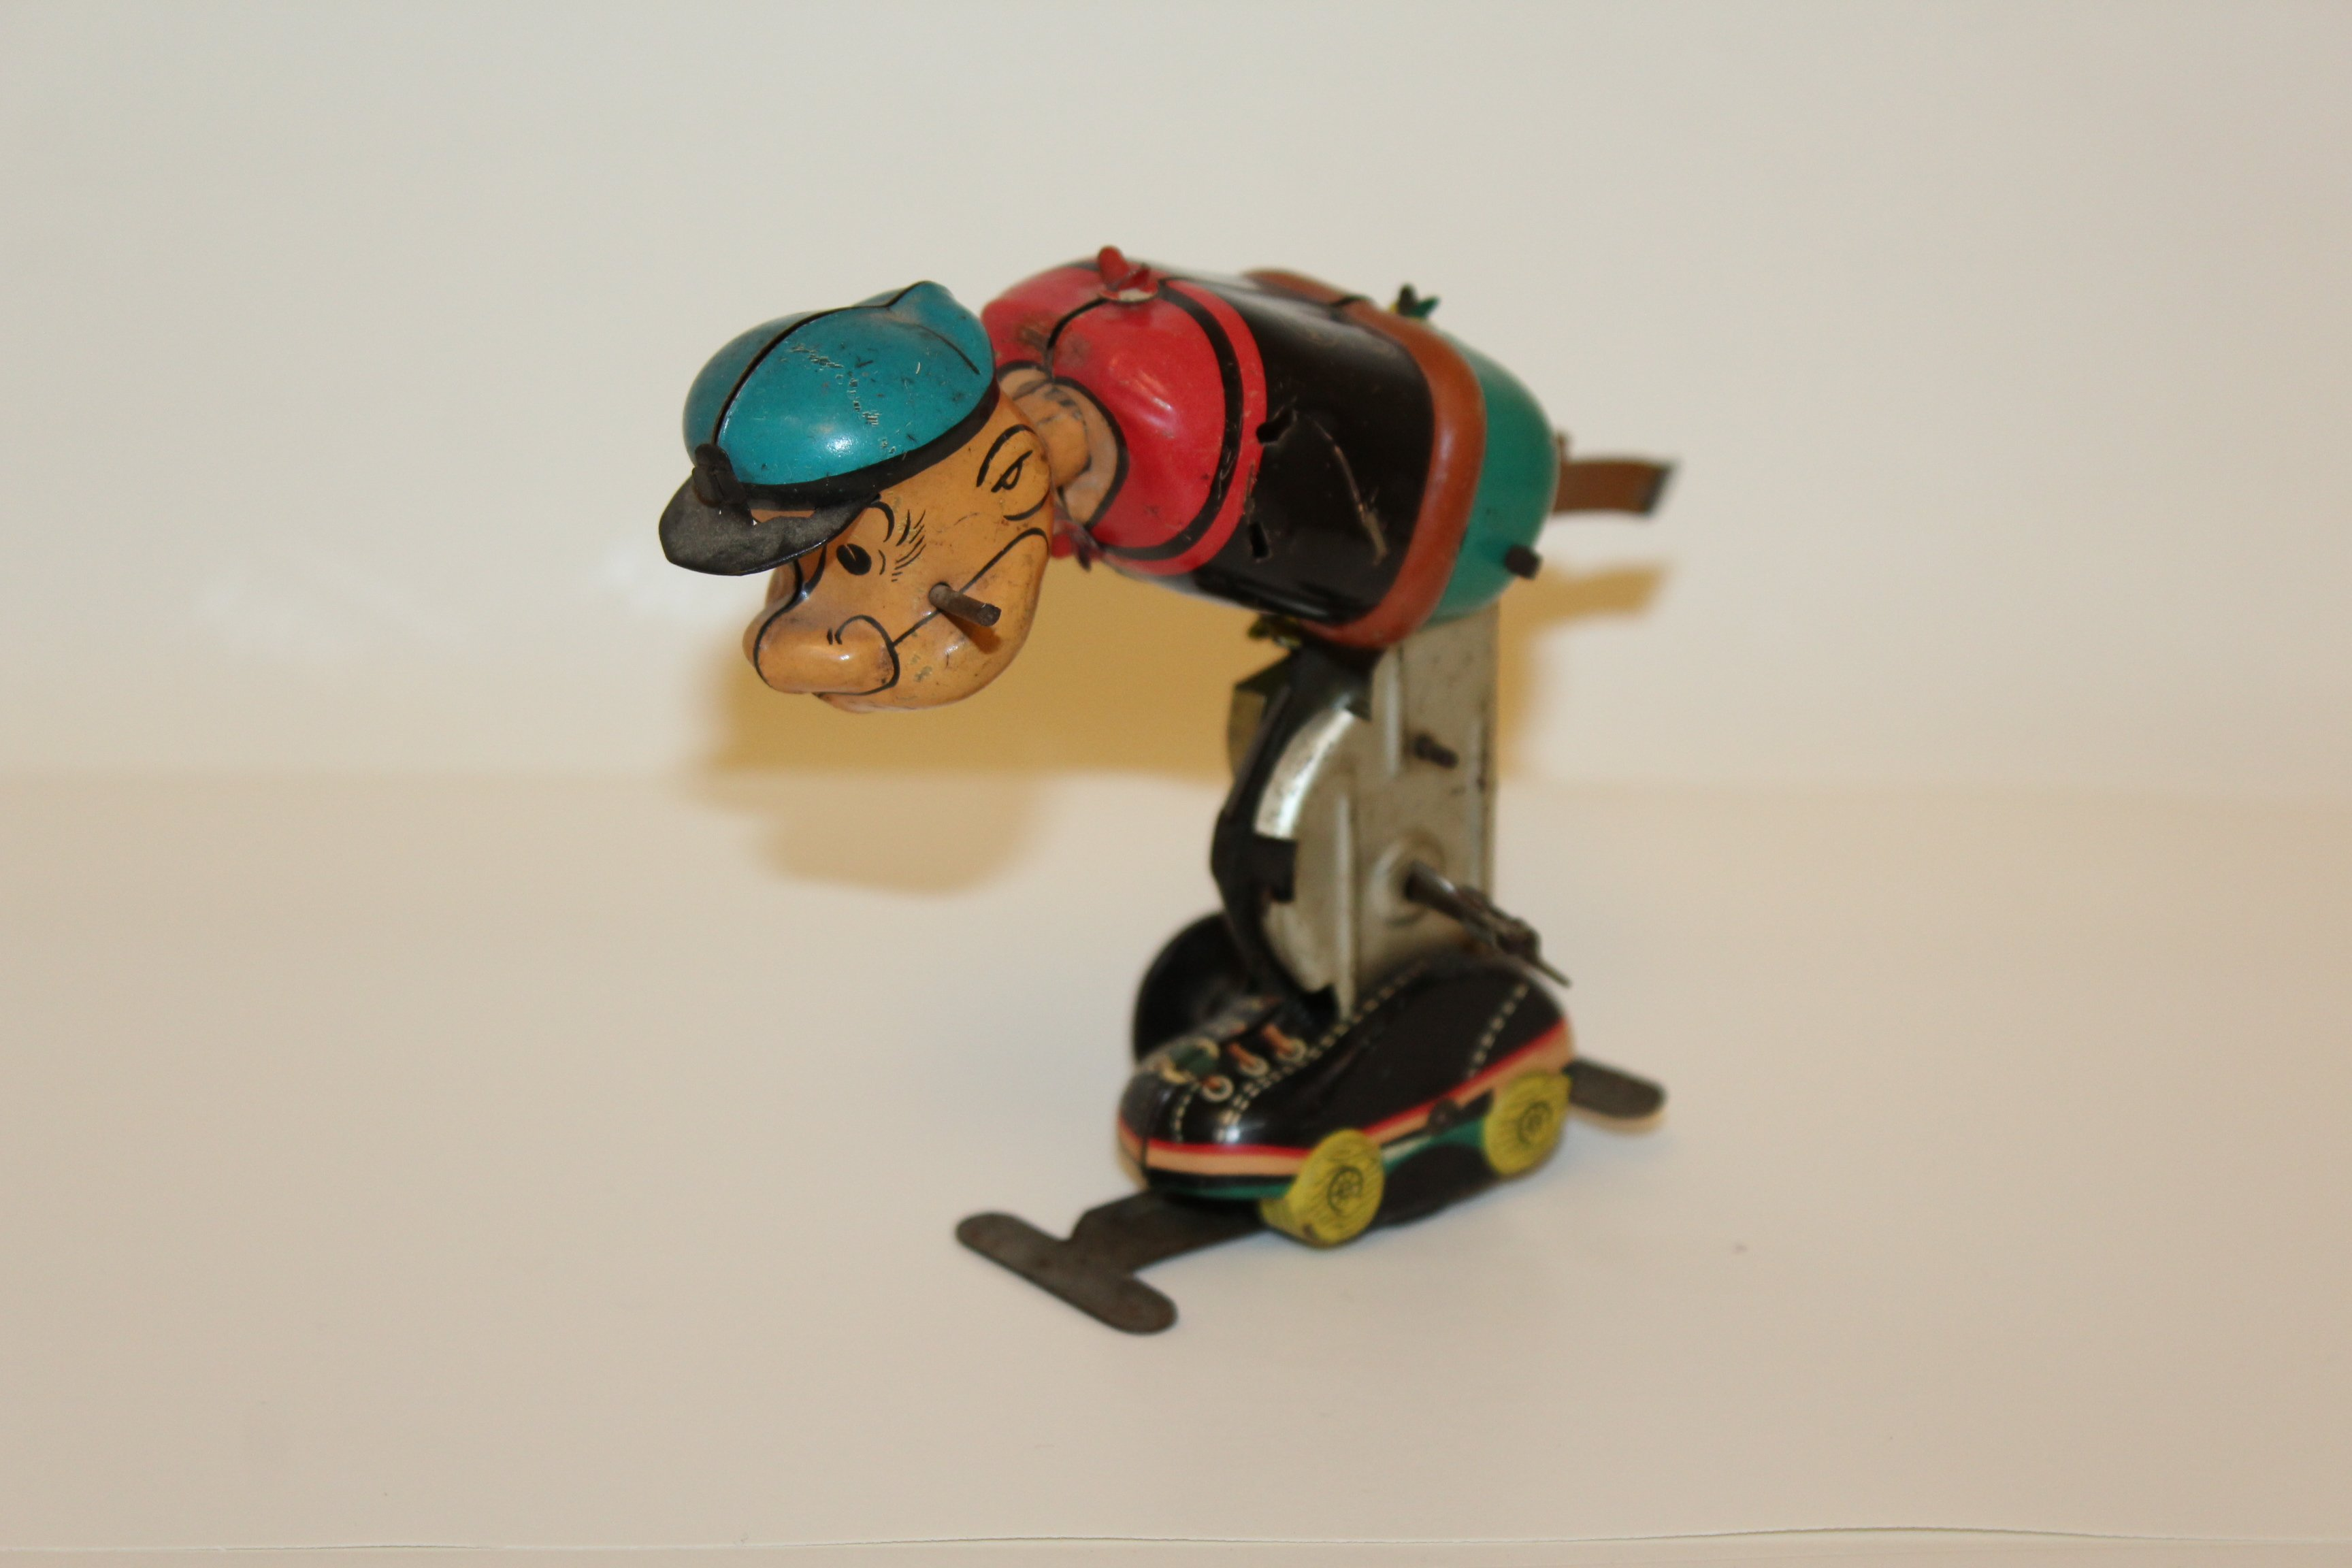 https://0201.nccdn.net/1_2/000/000/17a/1a1/Popeye-Skating.JPG